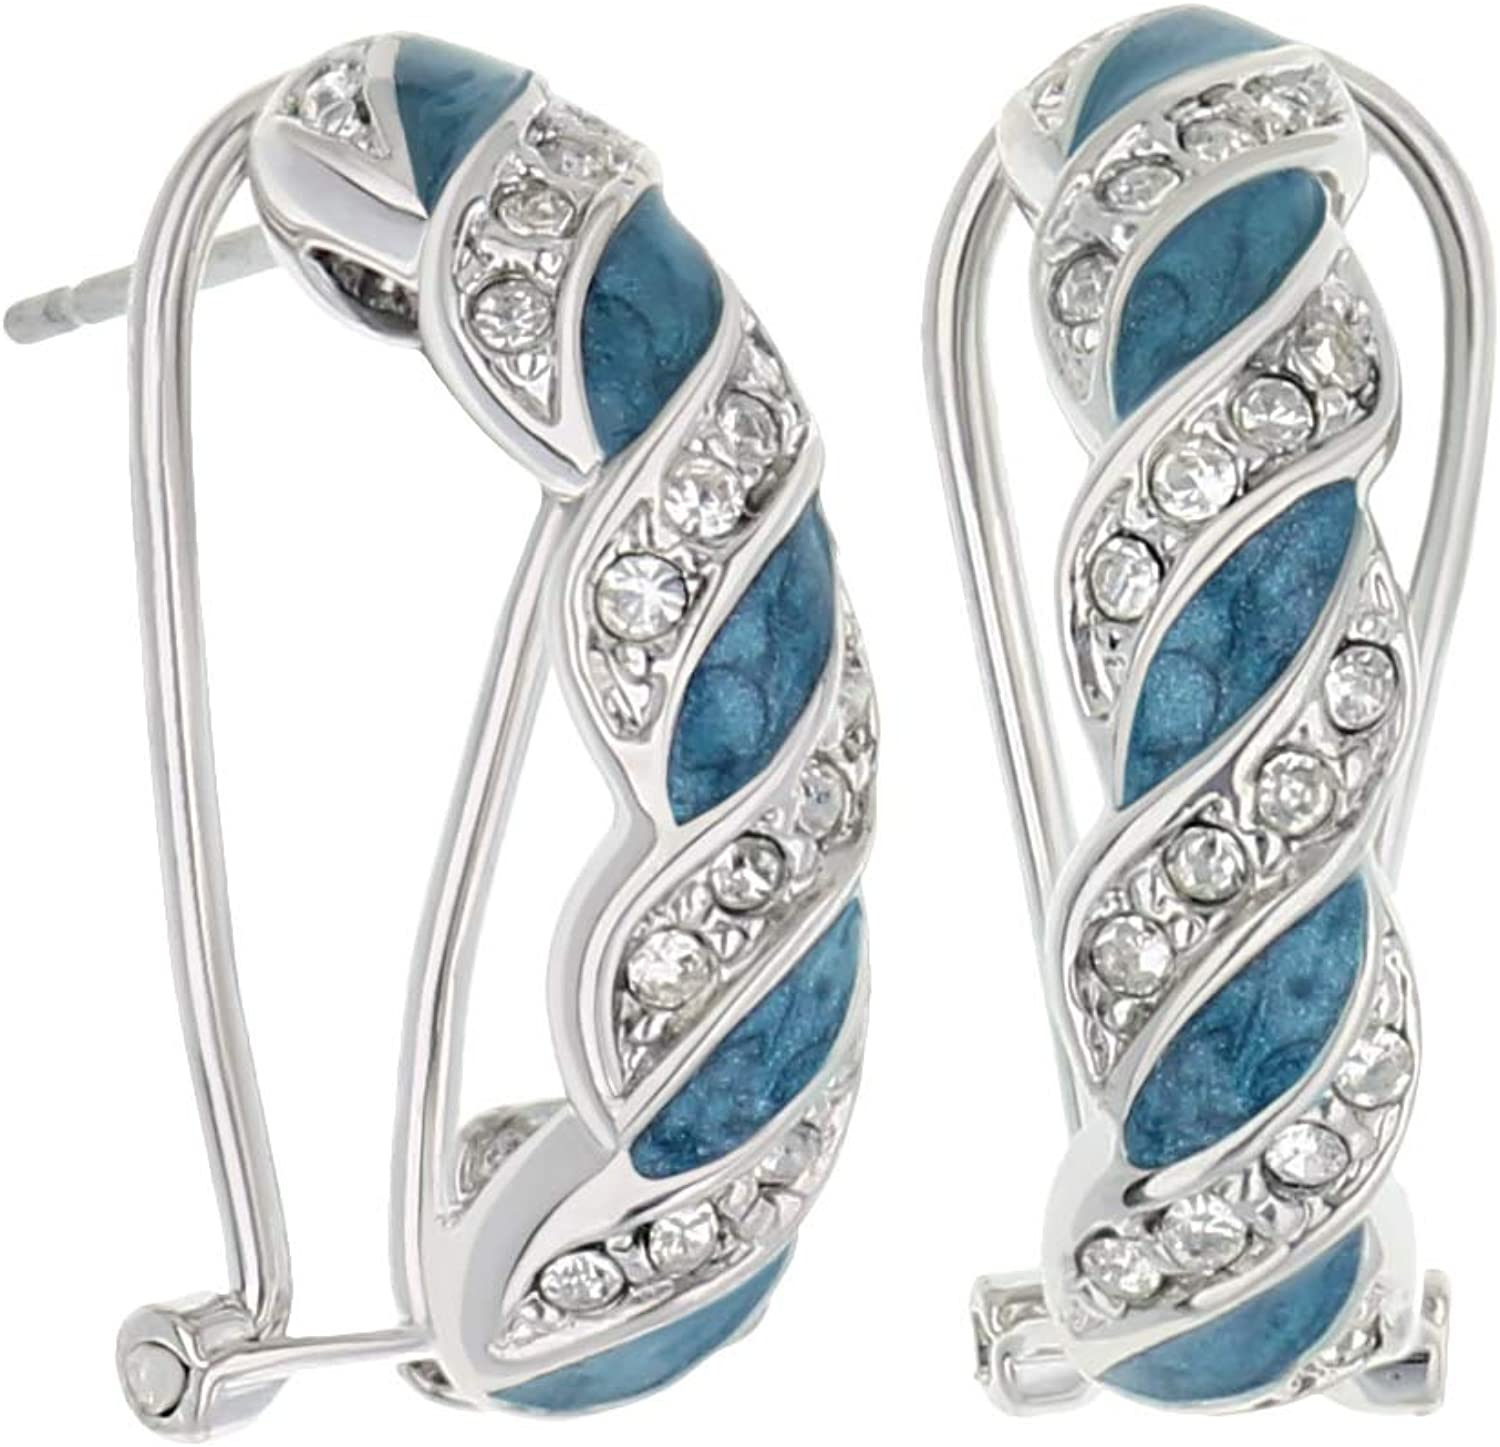 Lga French Clip Earrings - French Clip